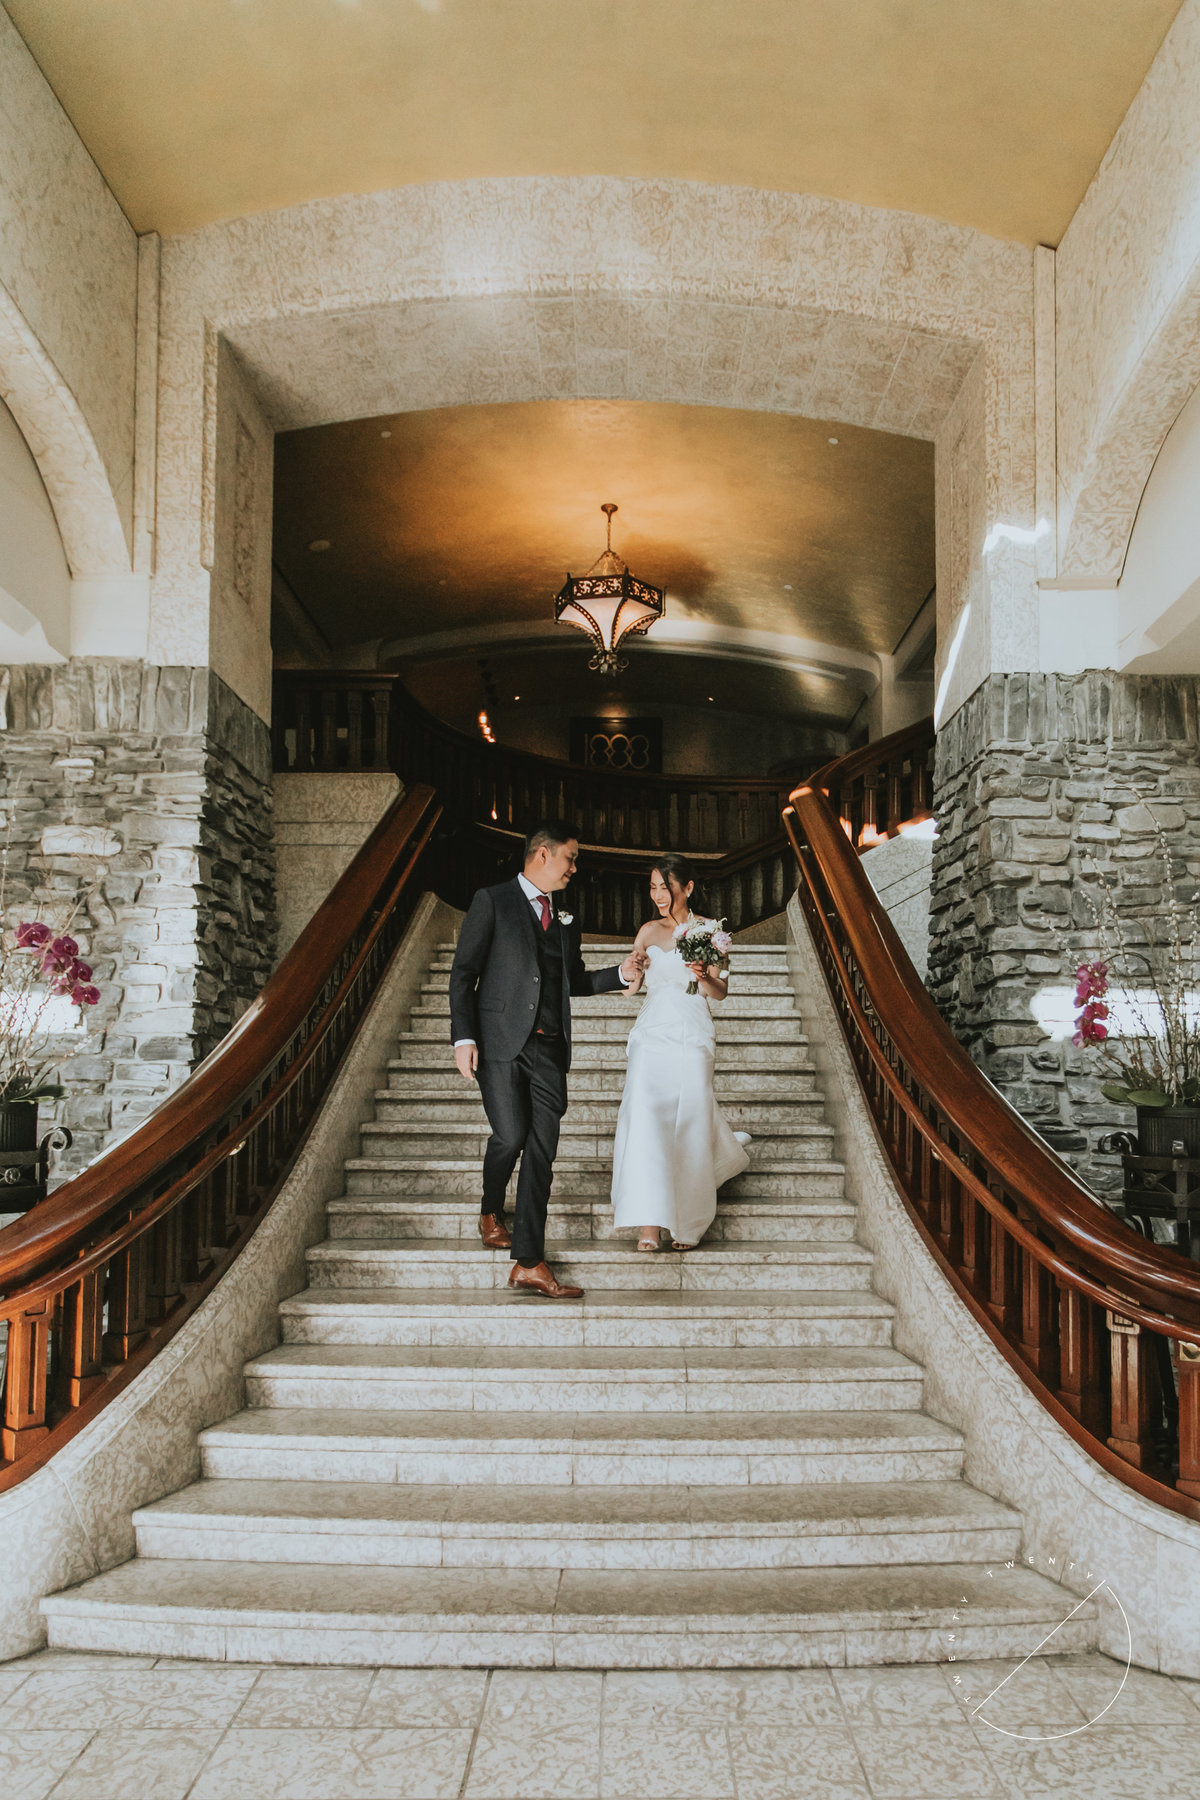 Bride and Groom coming down staircase inside the Banff Springs Hotel by Twenty Twenty Photography